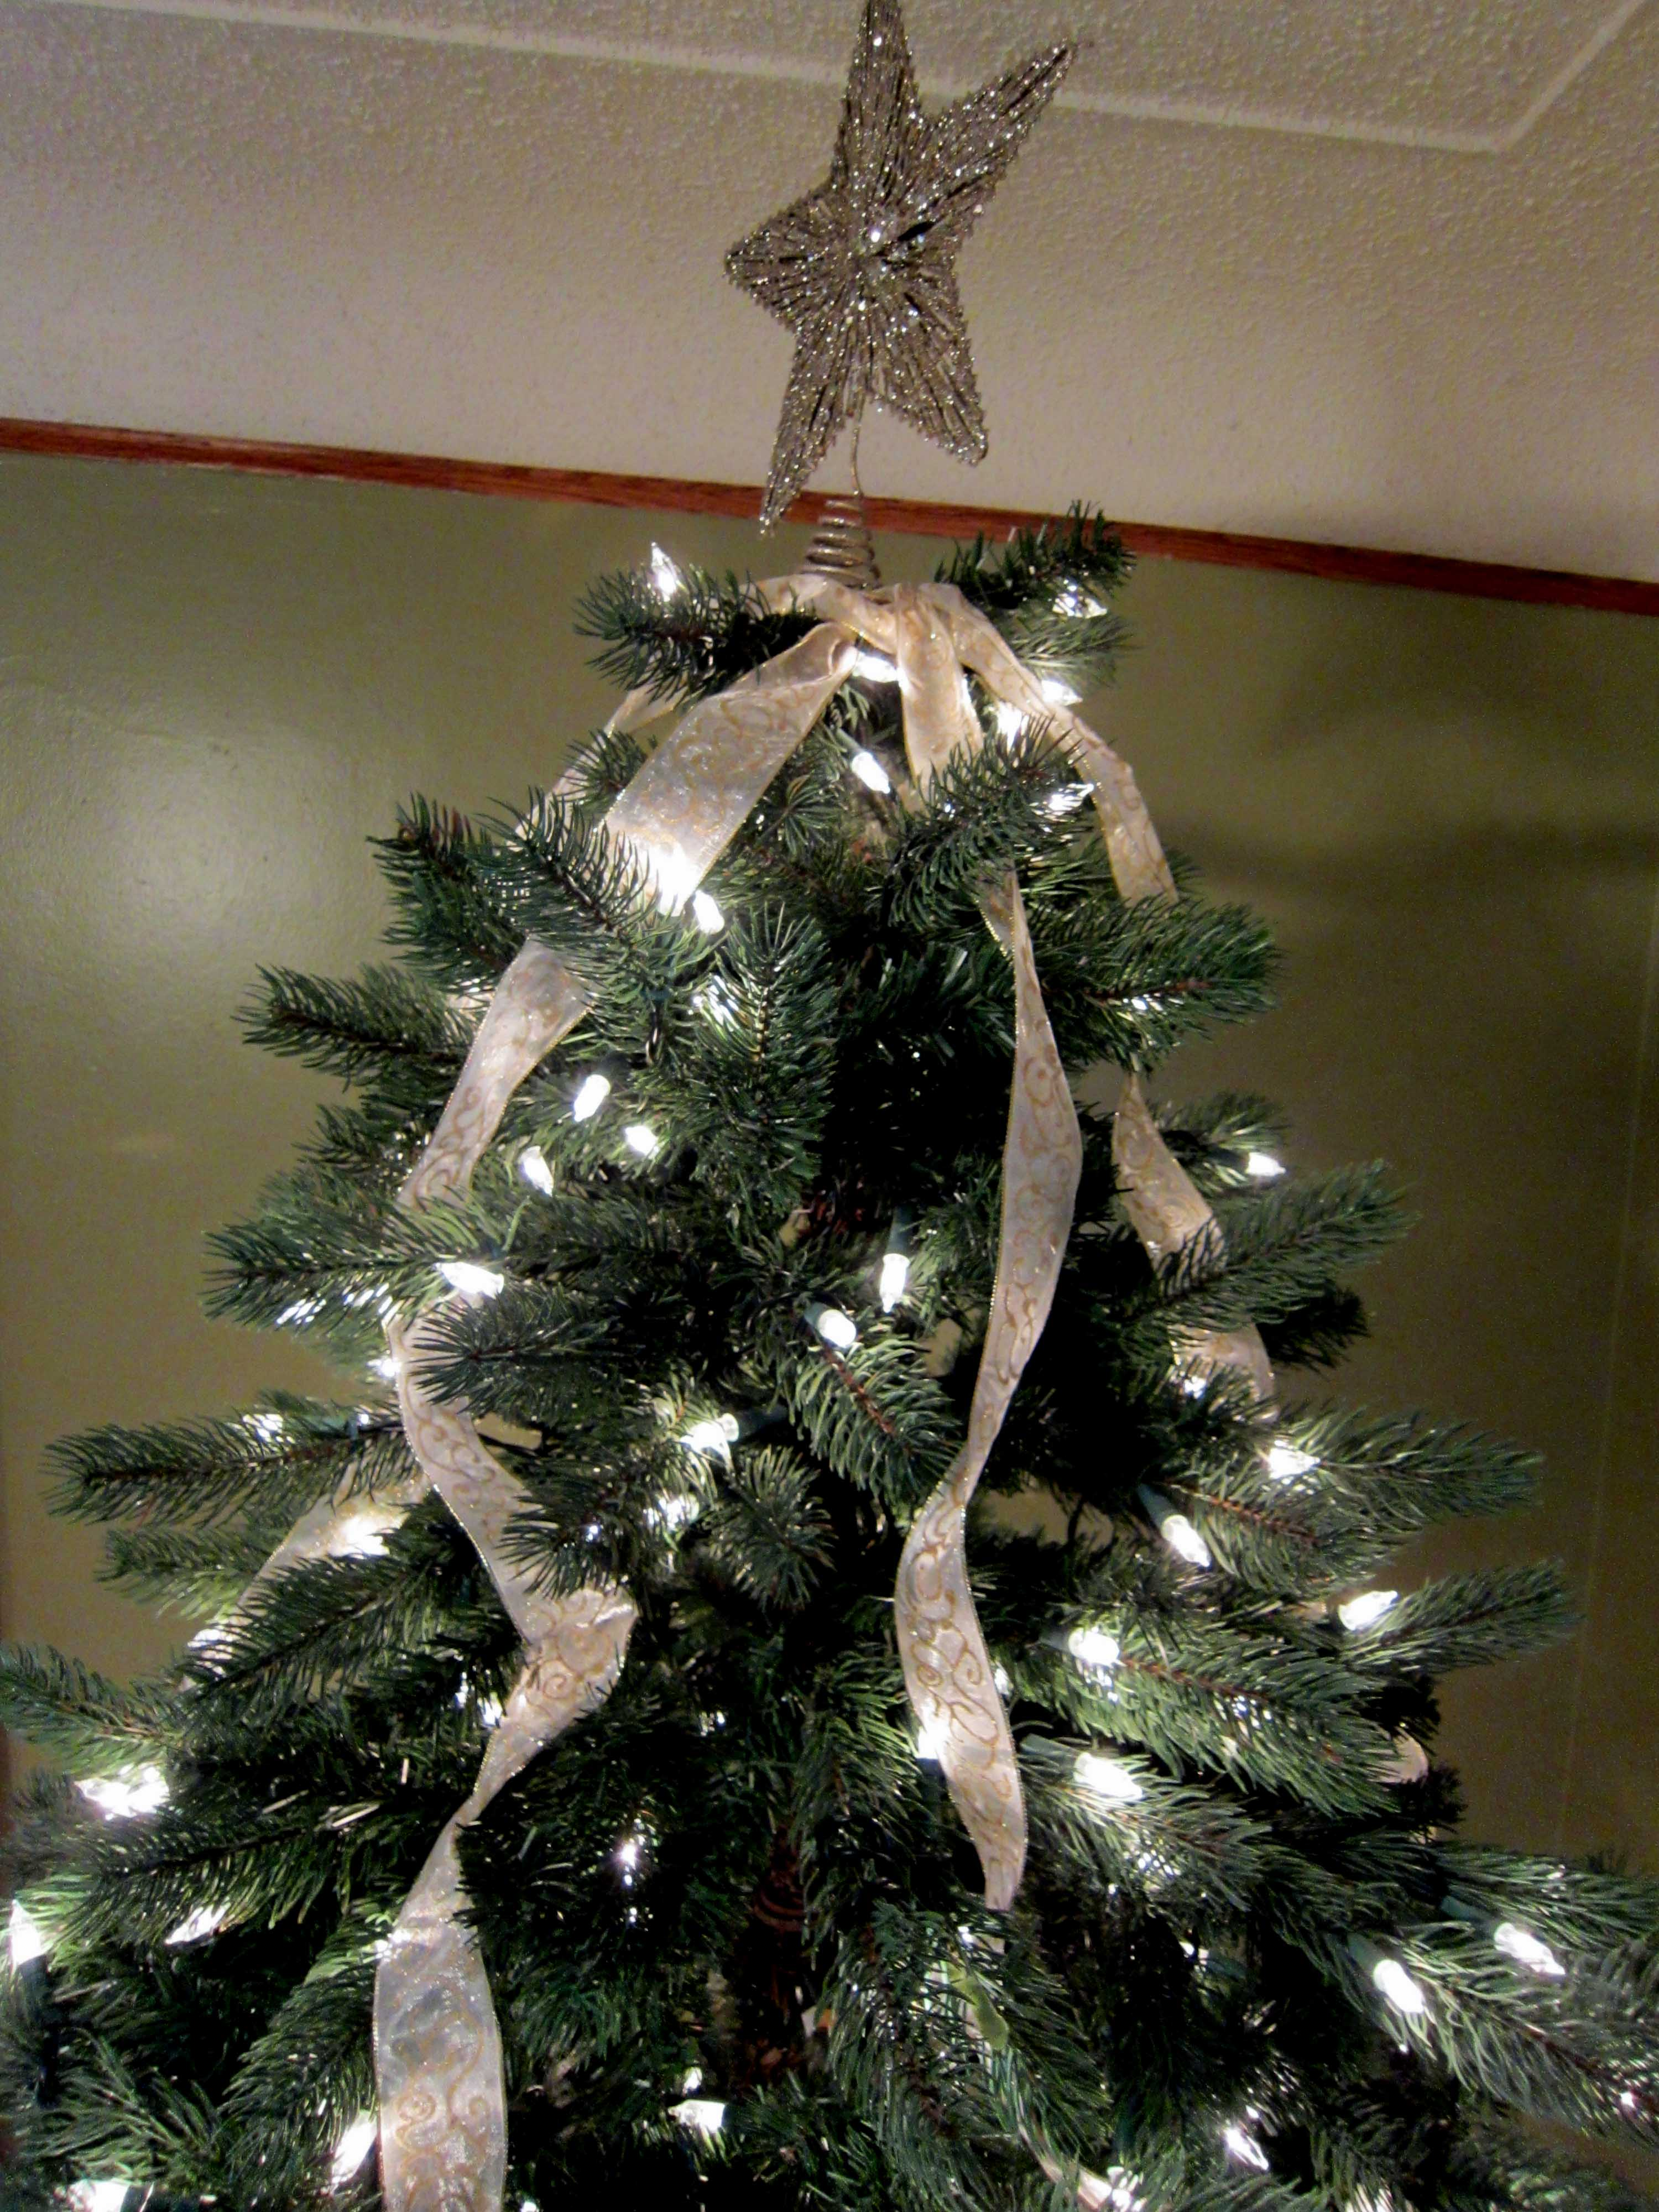 ribbon on tree - How To Put Ribbon On A Christmas Tree